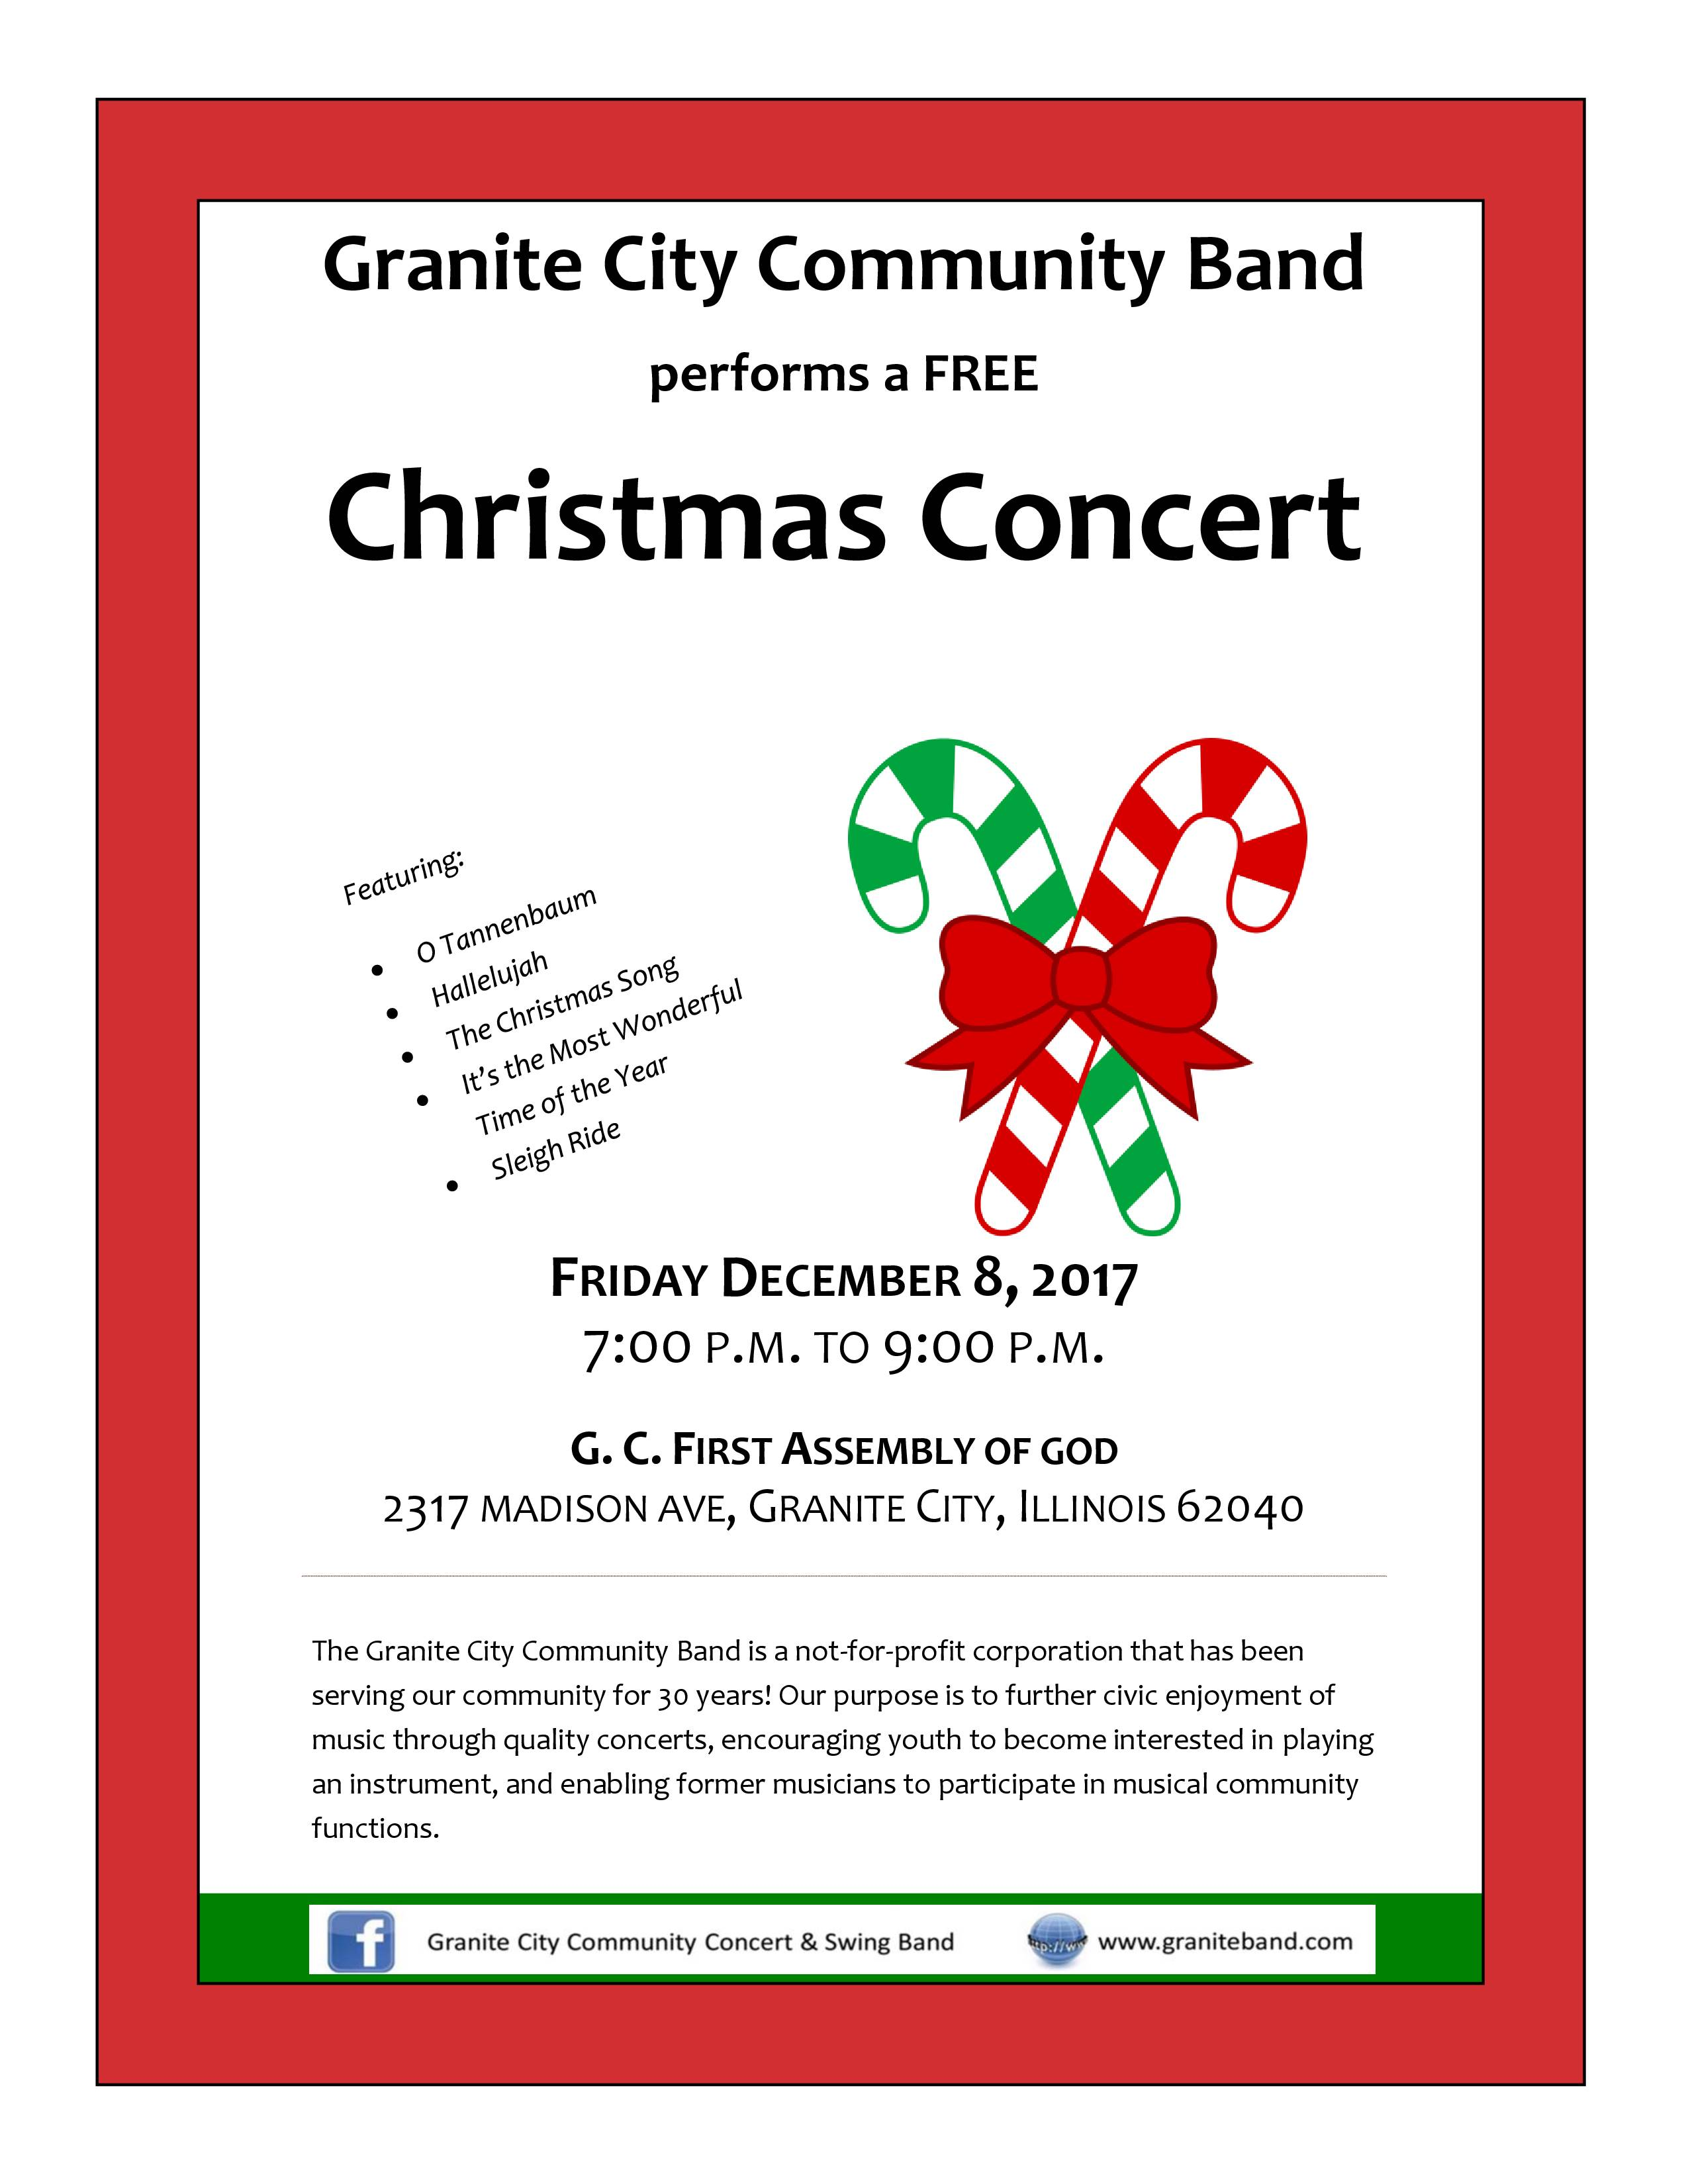 Christmas Concert Flyer-2017.docx